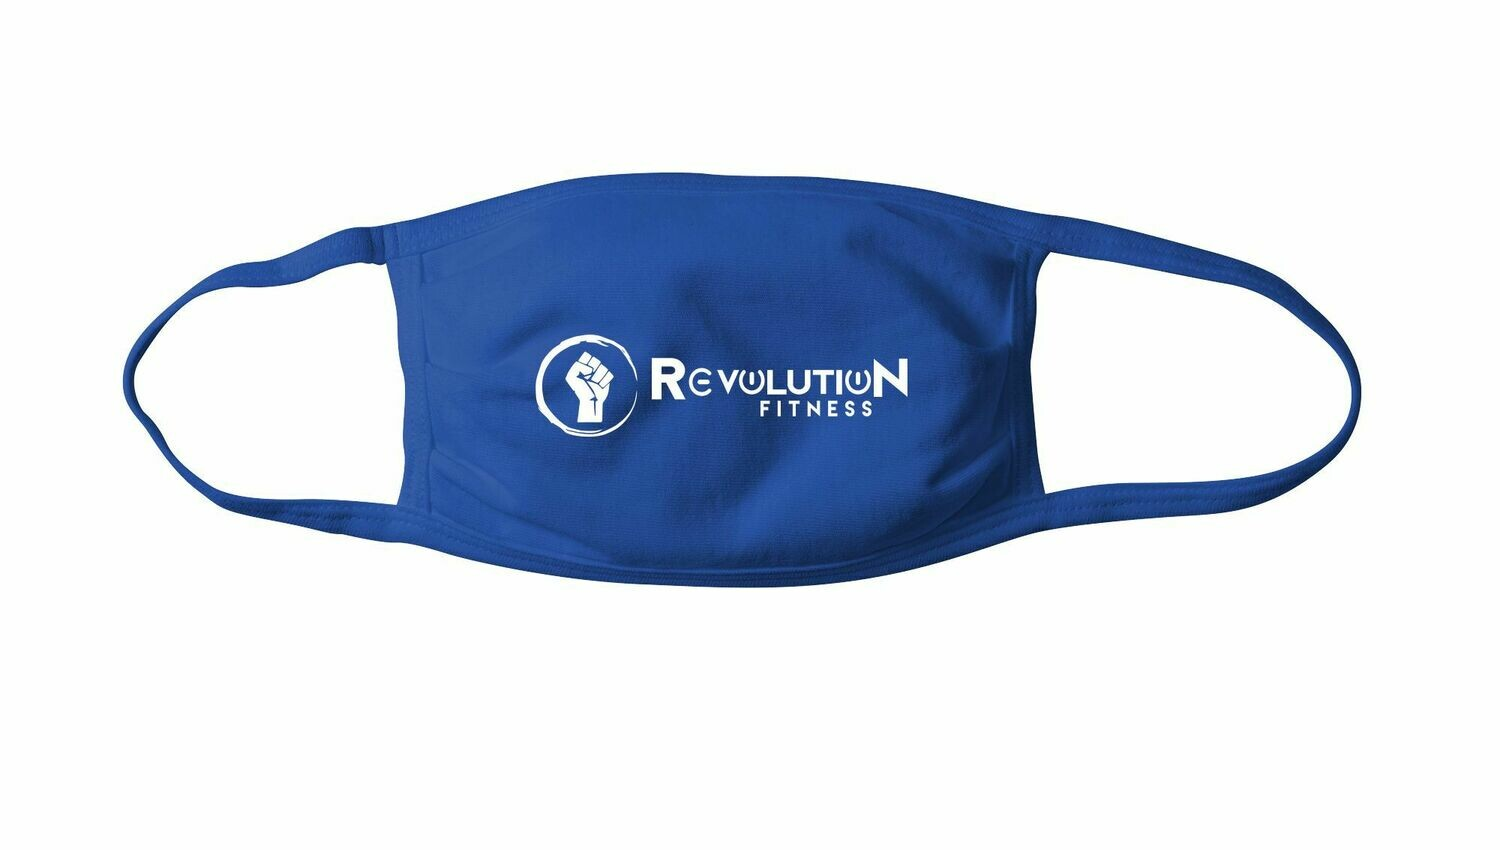 Revolution Fitness Mask